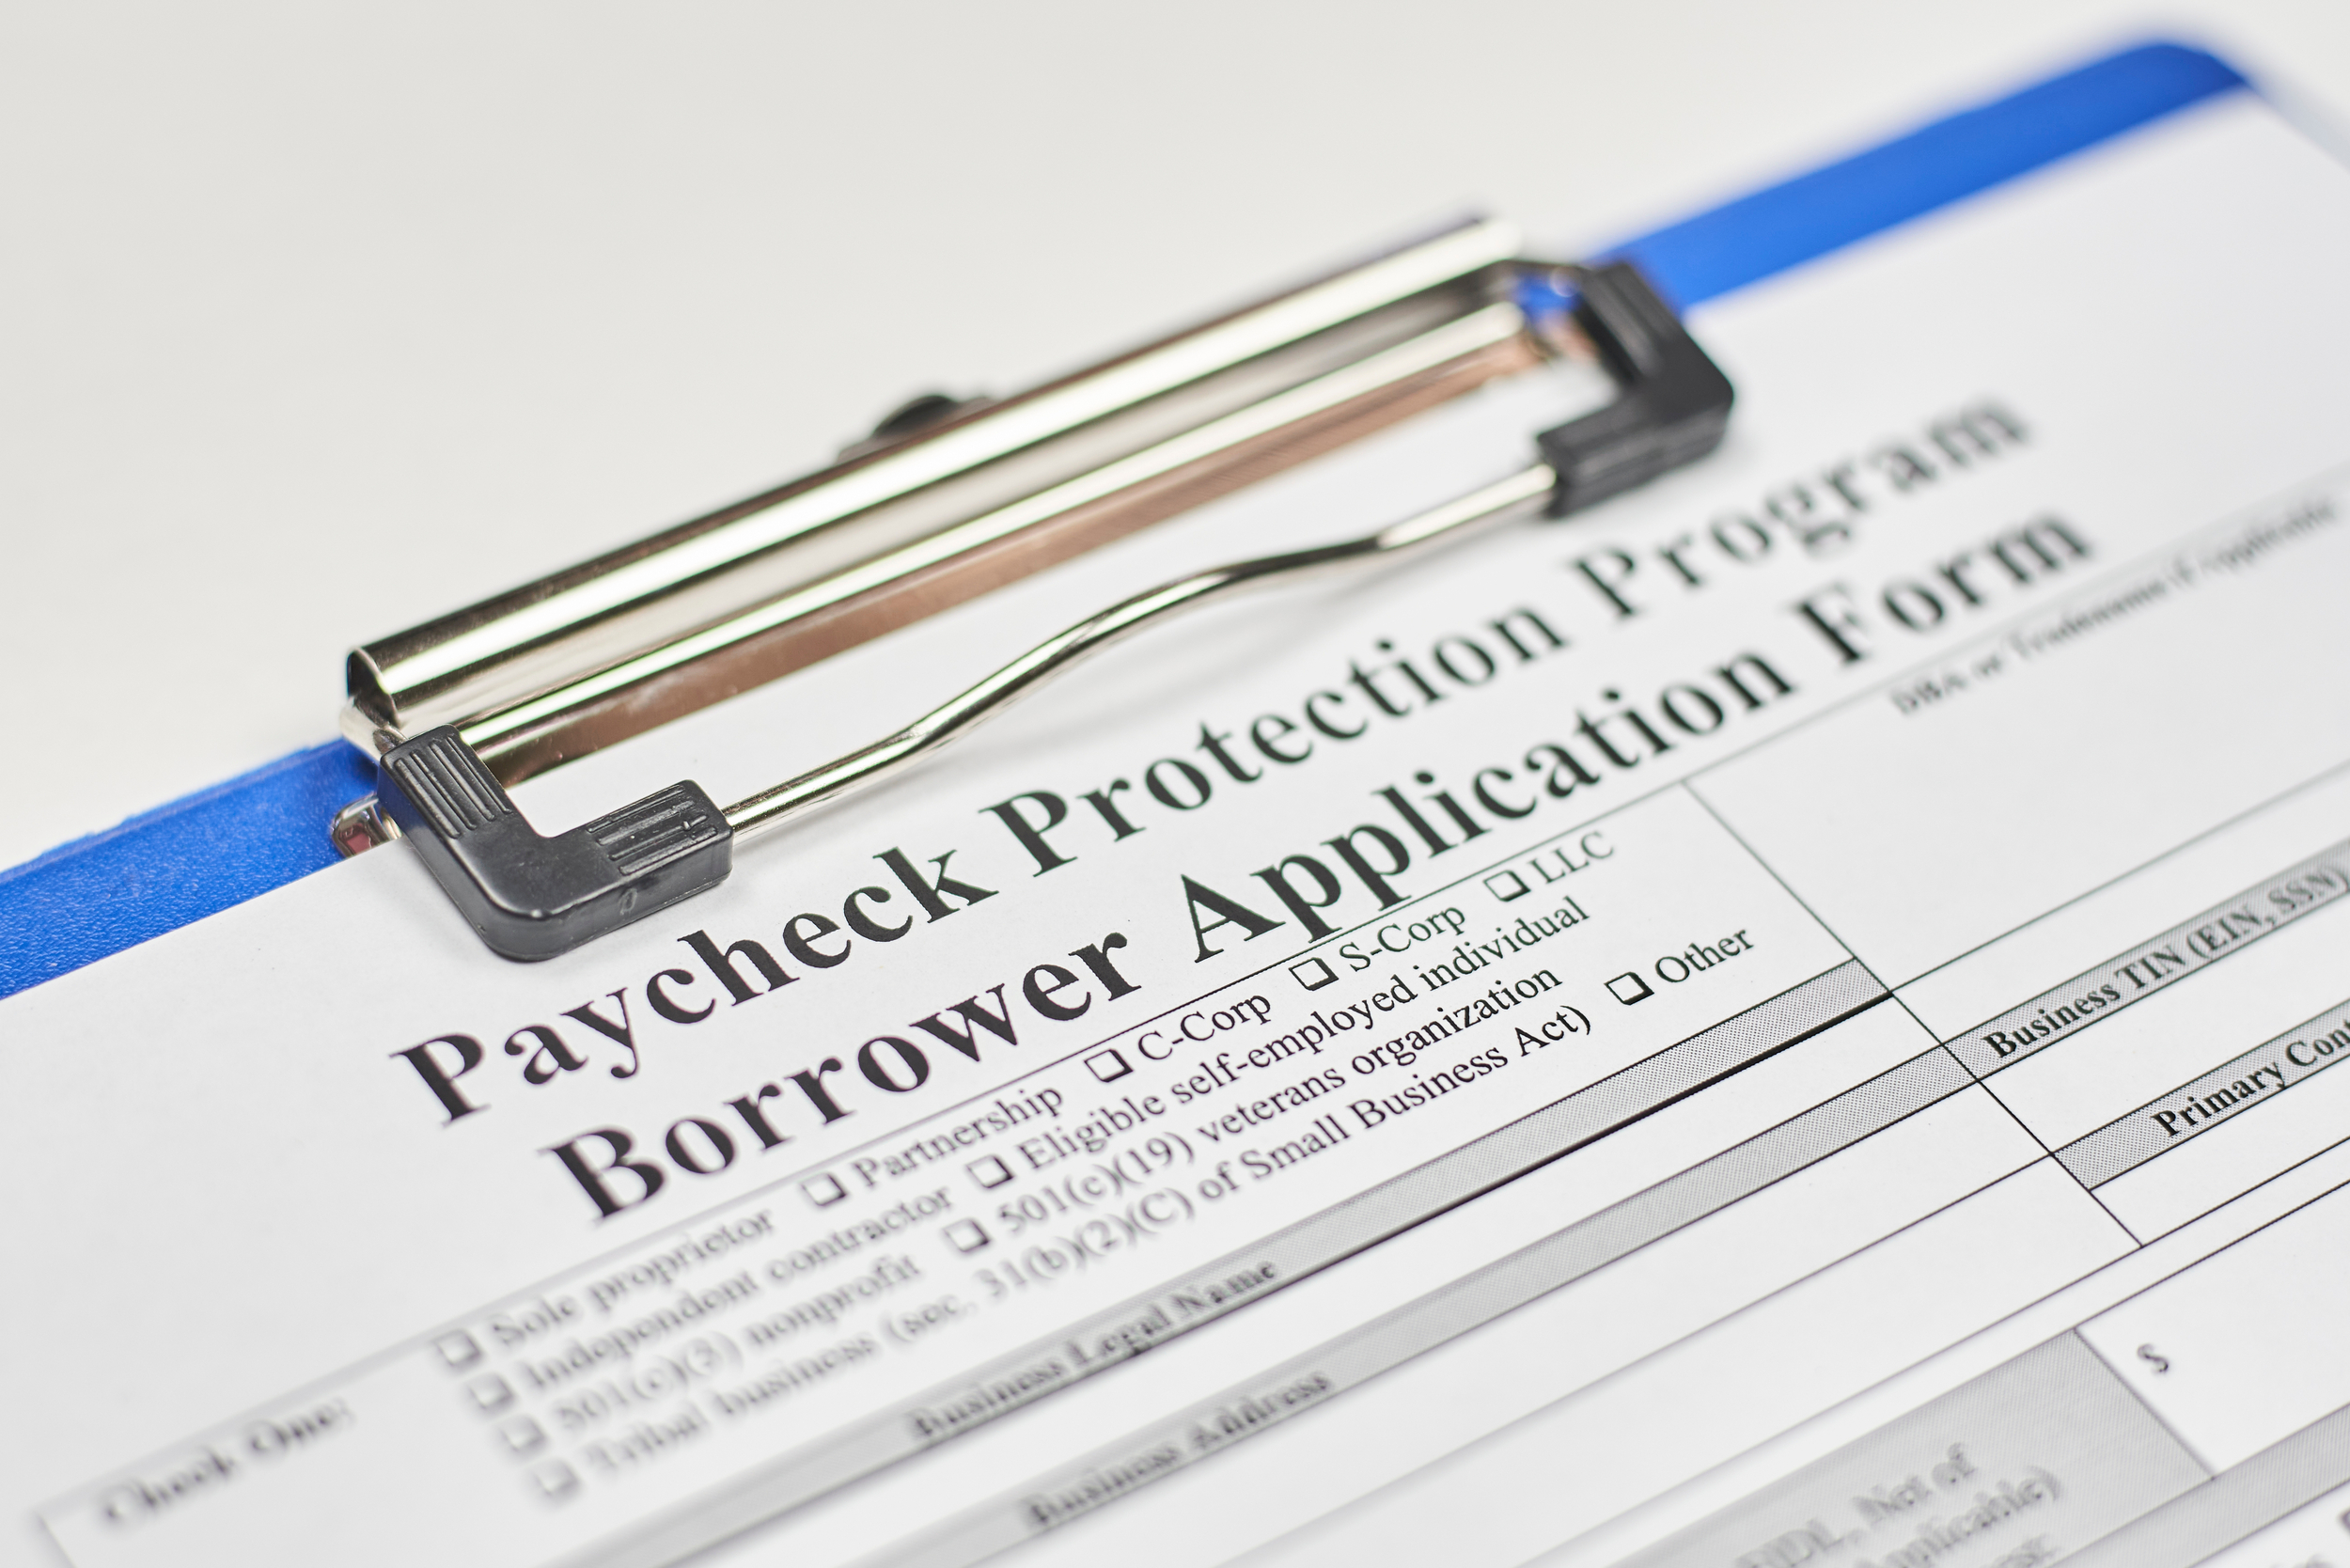 DST Advisory Group Blog Post - Clipboard with Paycheck Protection Program (PPP) Application Form attached